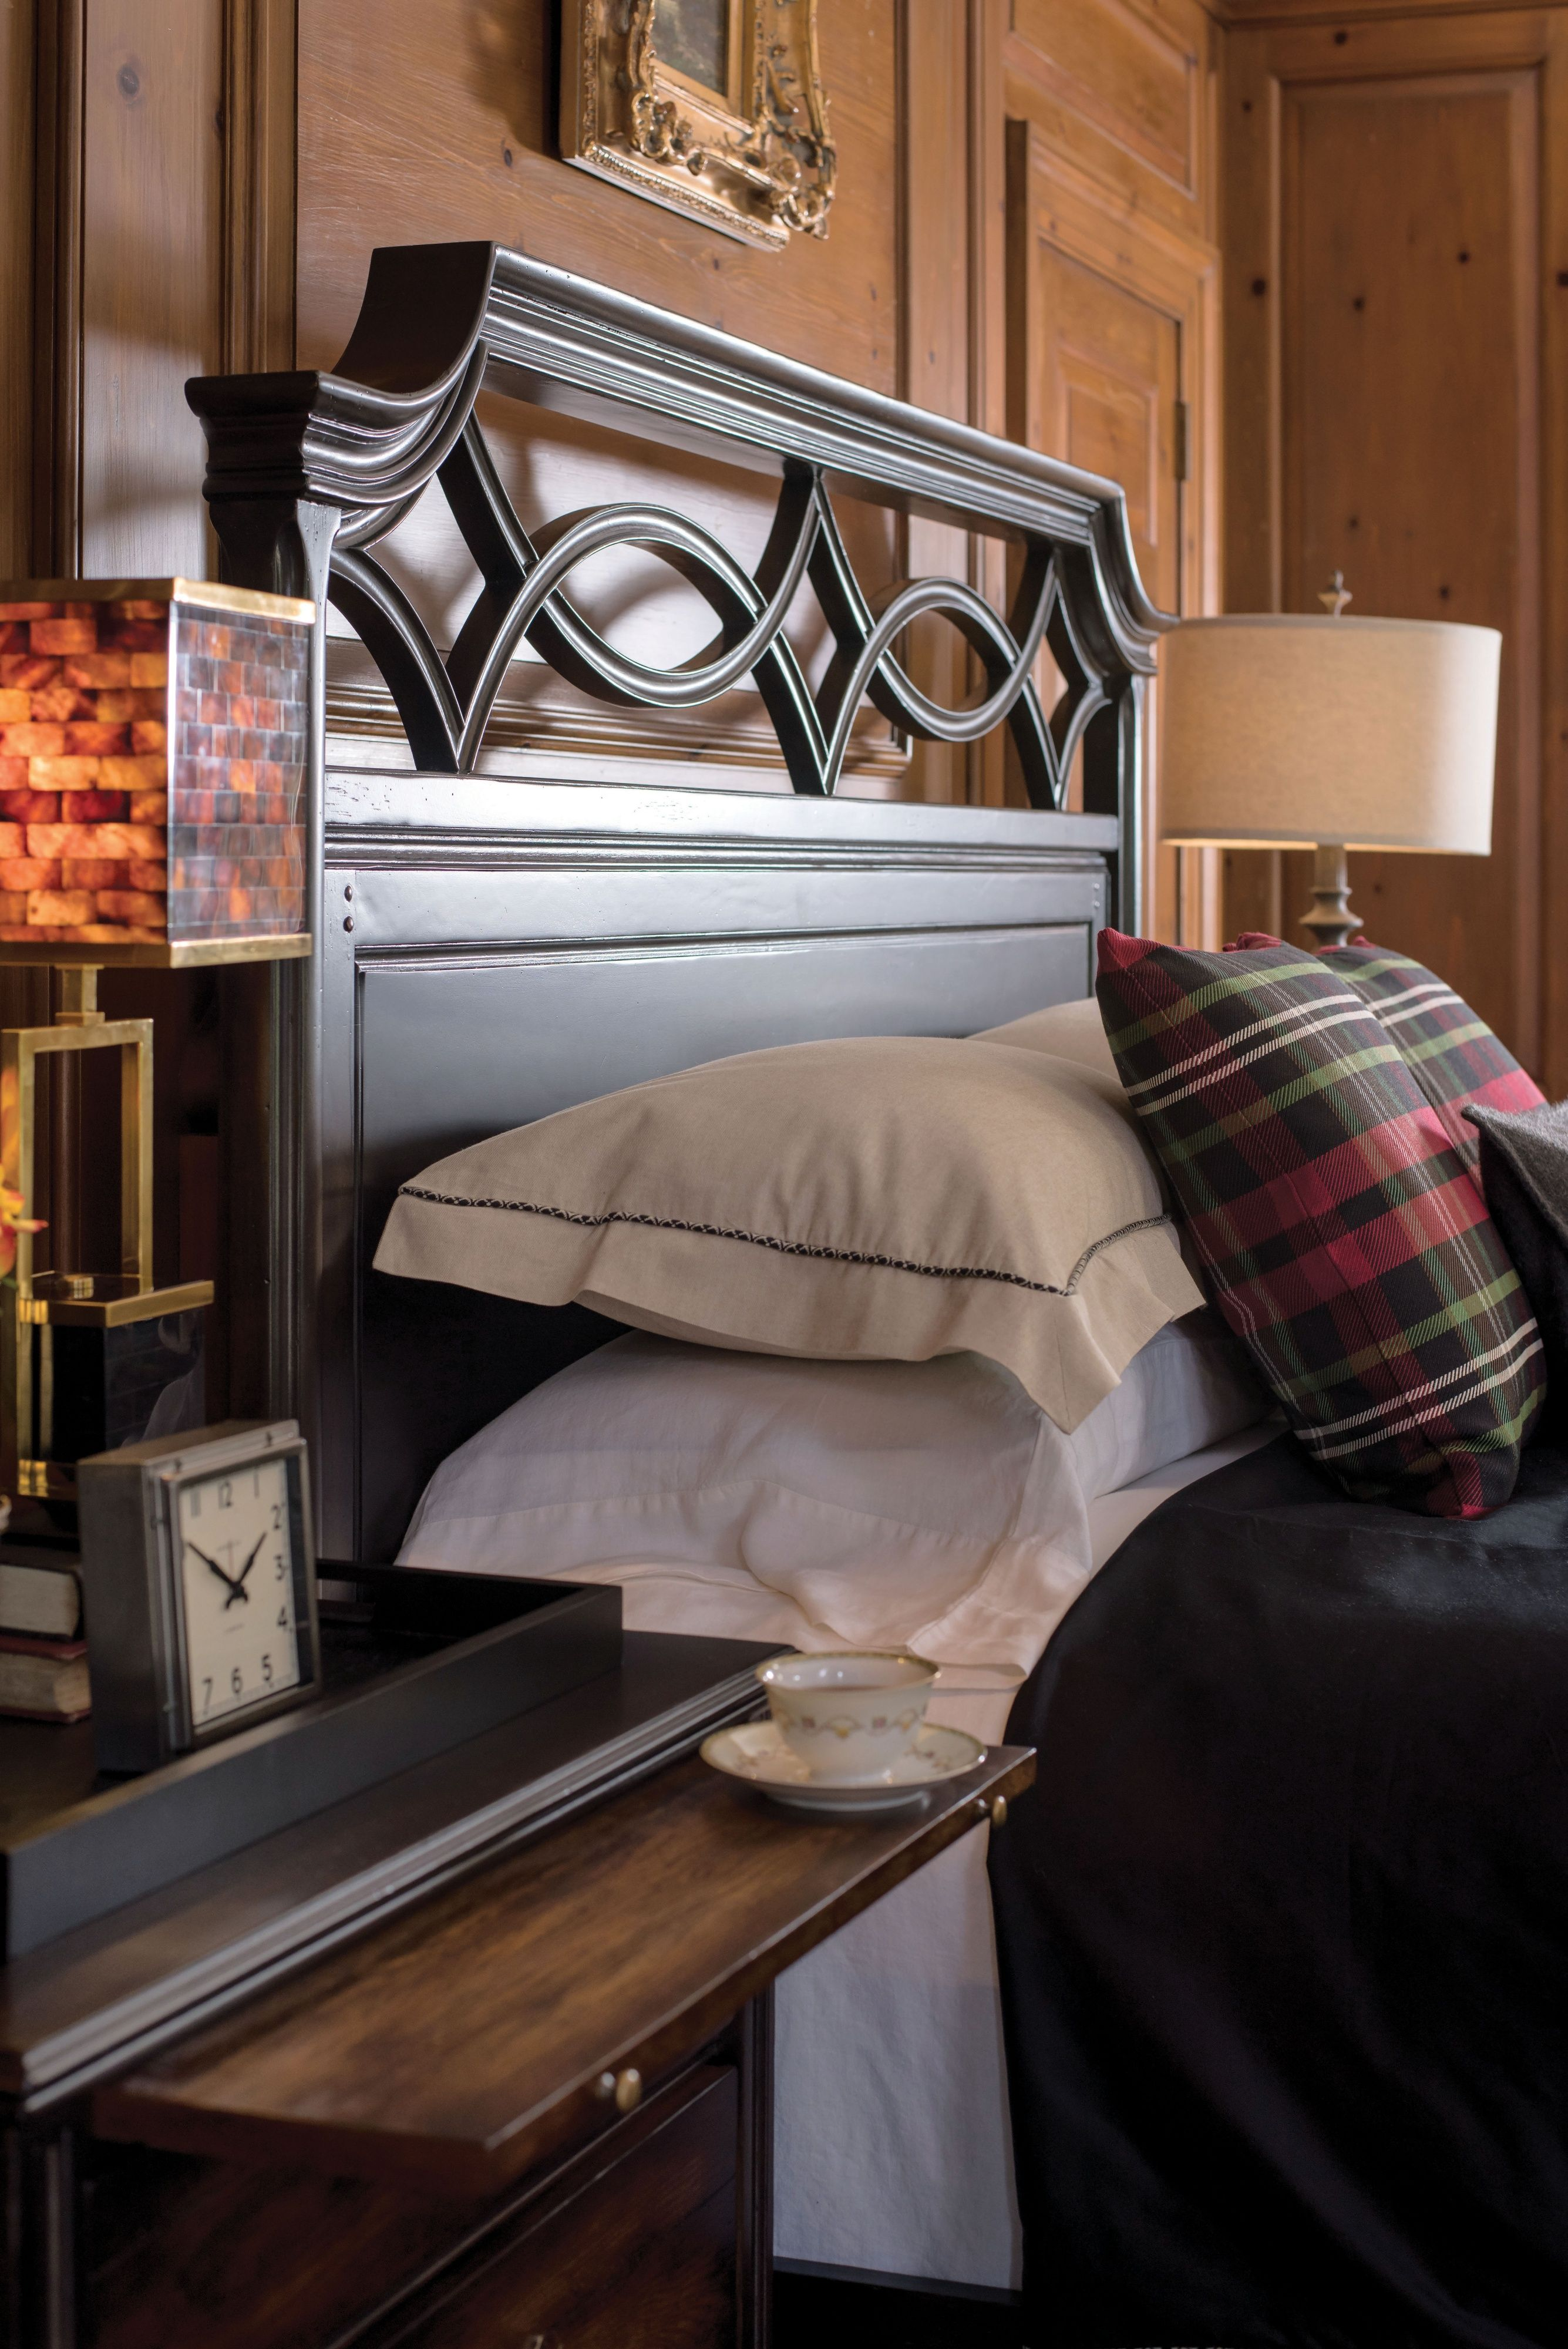 Shown here Close up of Brighthamption Queen bed headboard